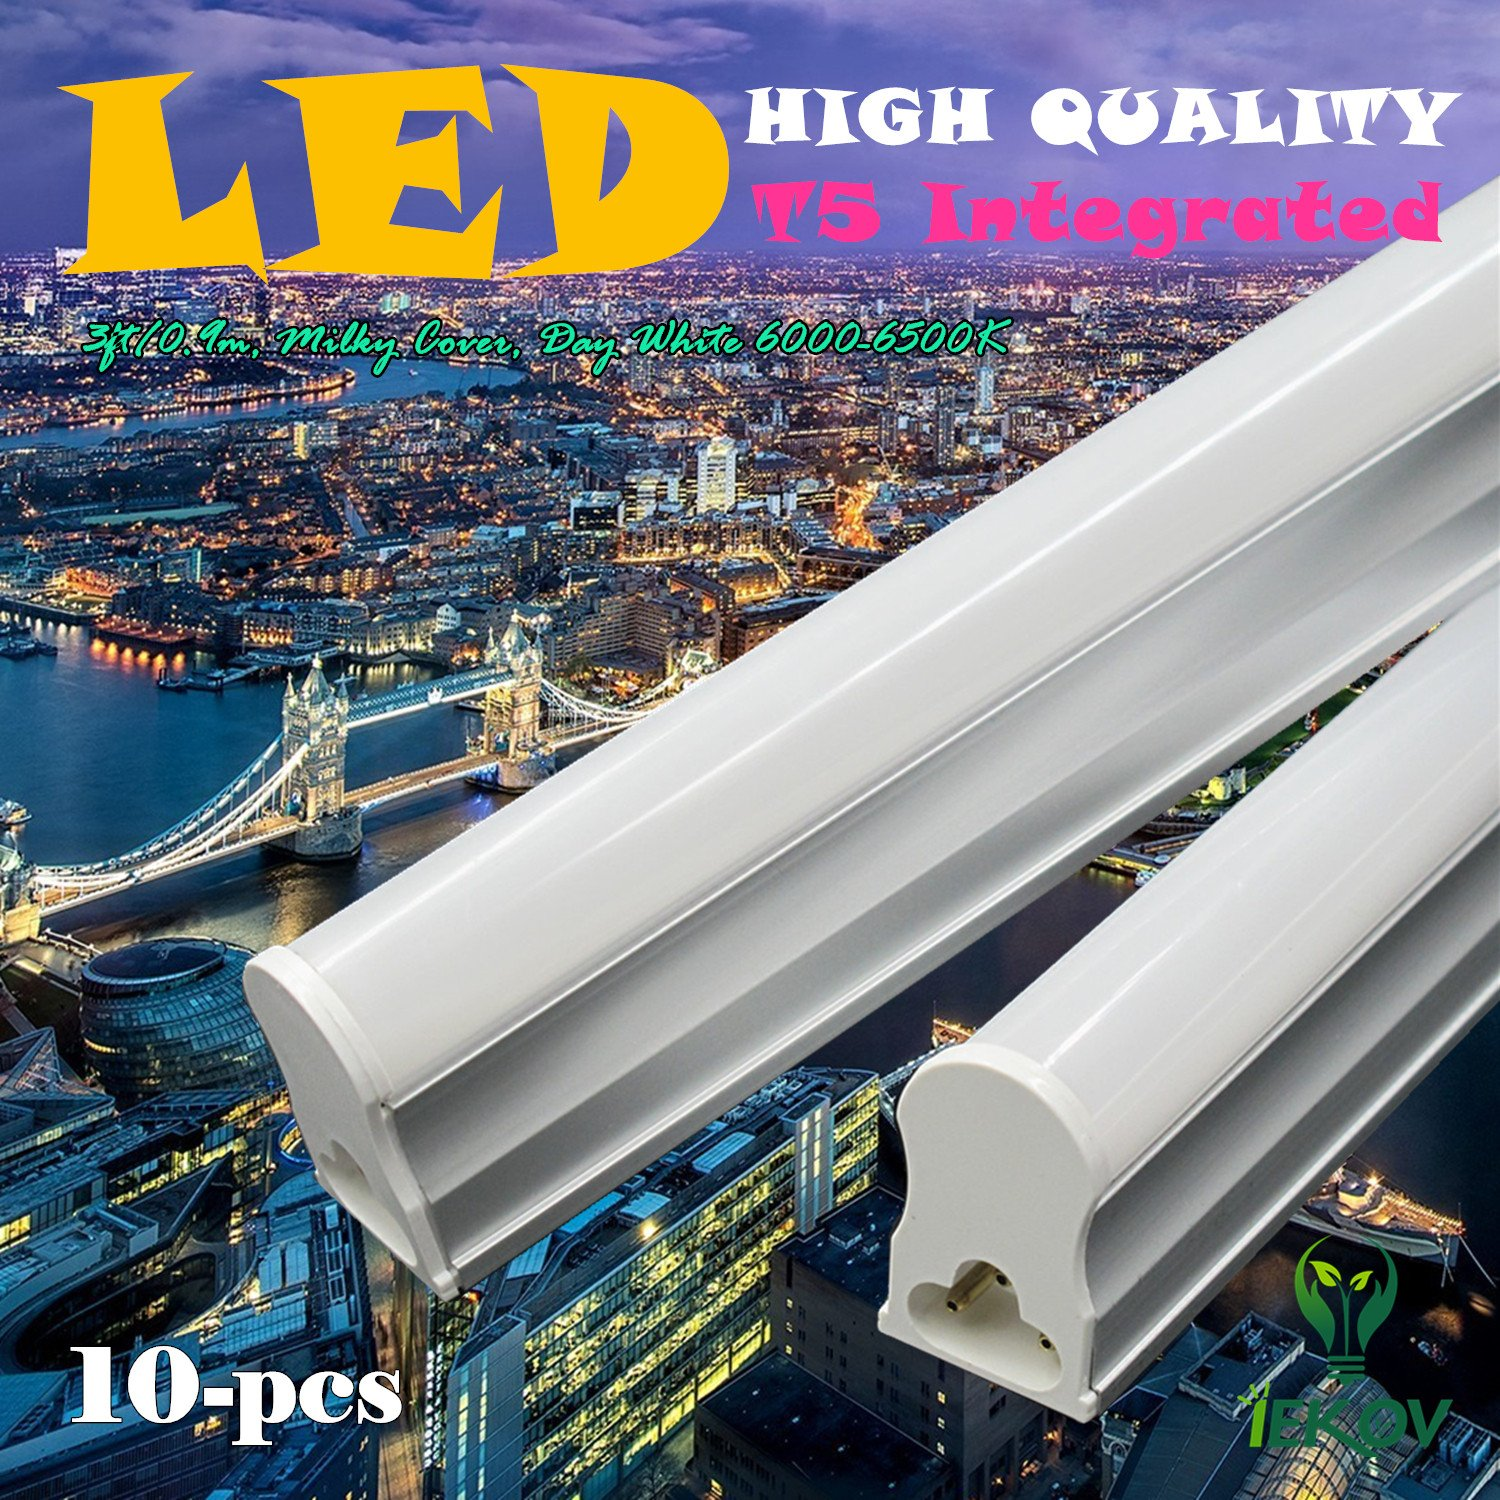 IEKOV 10-Pack of trade; 14w Integrated T5 LED Tube Light Fixture, Replace of 36W Fluorescent Tube, Plug & Play, CE & RoHS qualified (3ft/0.9m, Day White 6000-6500K, Milky Cover)